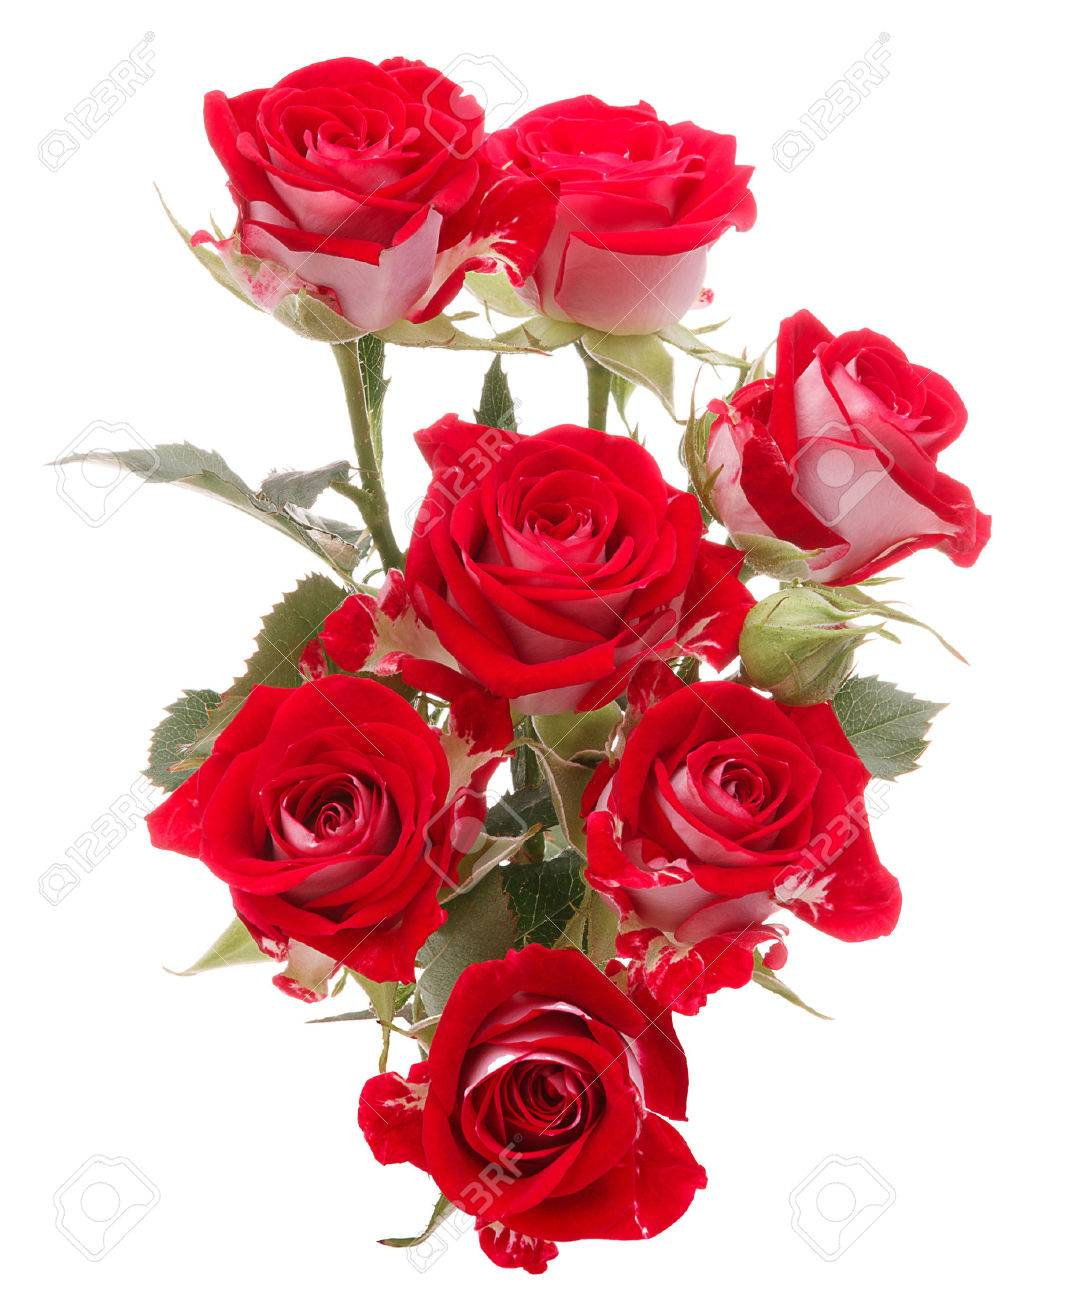 Red rose flower bouquet isolated on white background cutout stock red rose flower bouquet isolated on white background cutout stock photo 24288596 izmirmasajfo